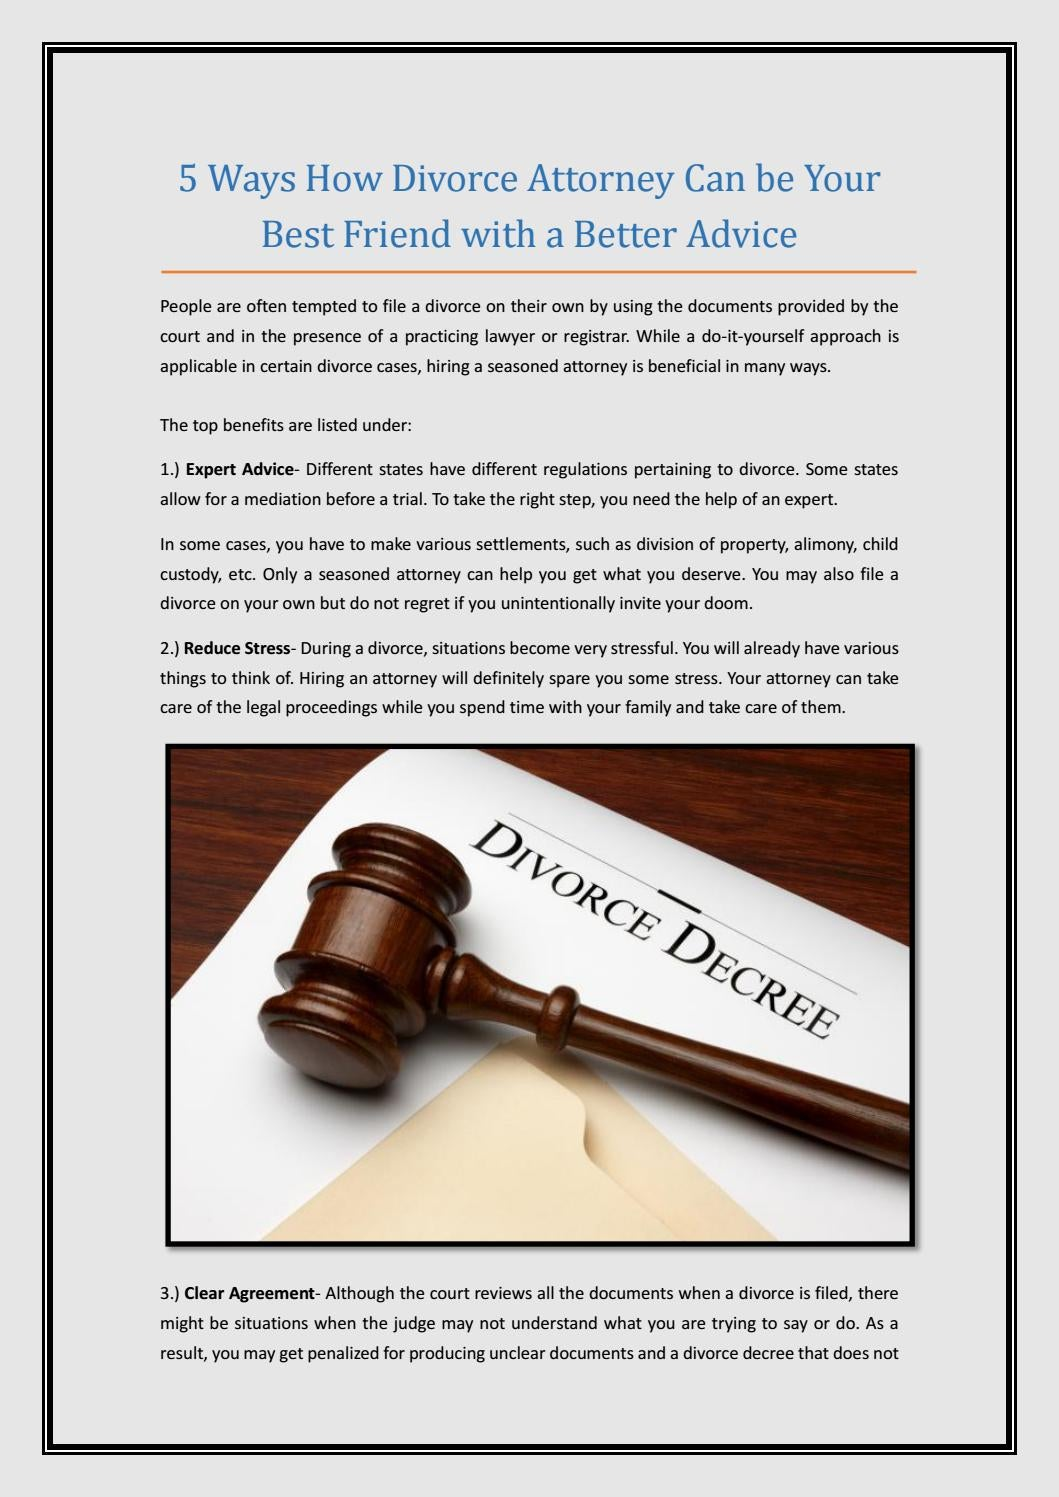 5 ways how divorce attorney can be your best friend with a better 5 ways how divorce attorney can be your best friend with a better advice by elishahjahanian issuu solutioingenieria Image collections